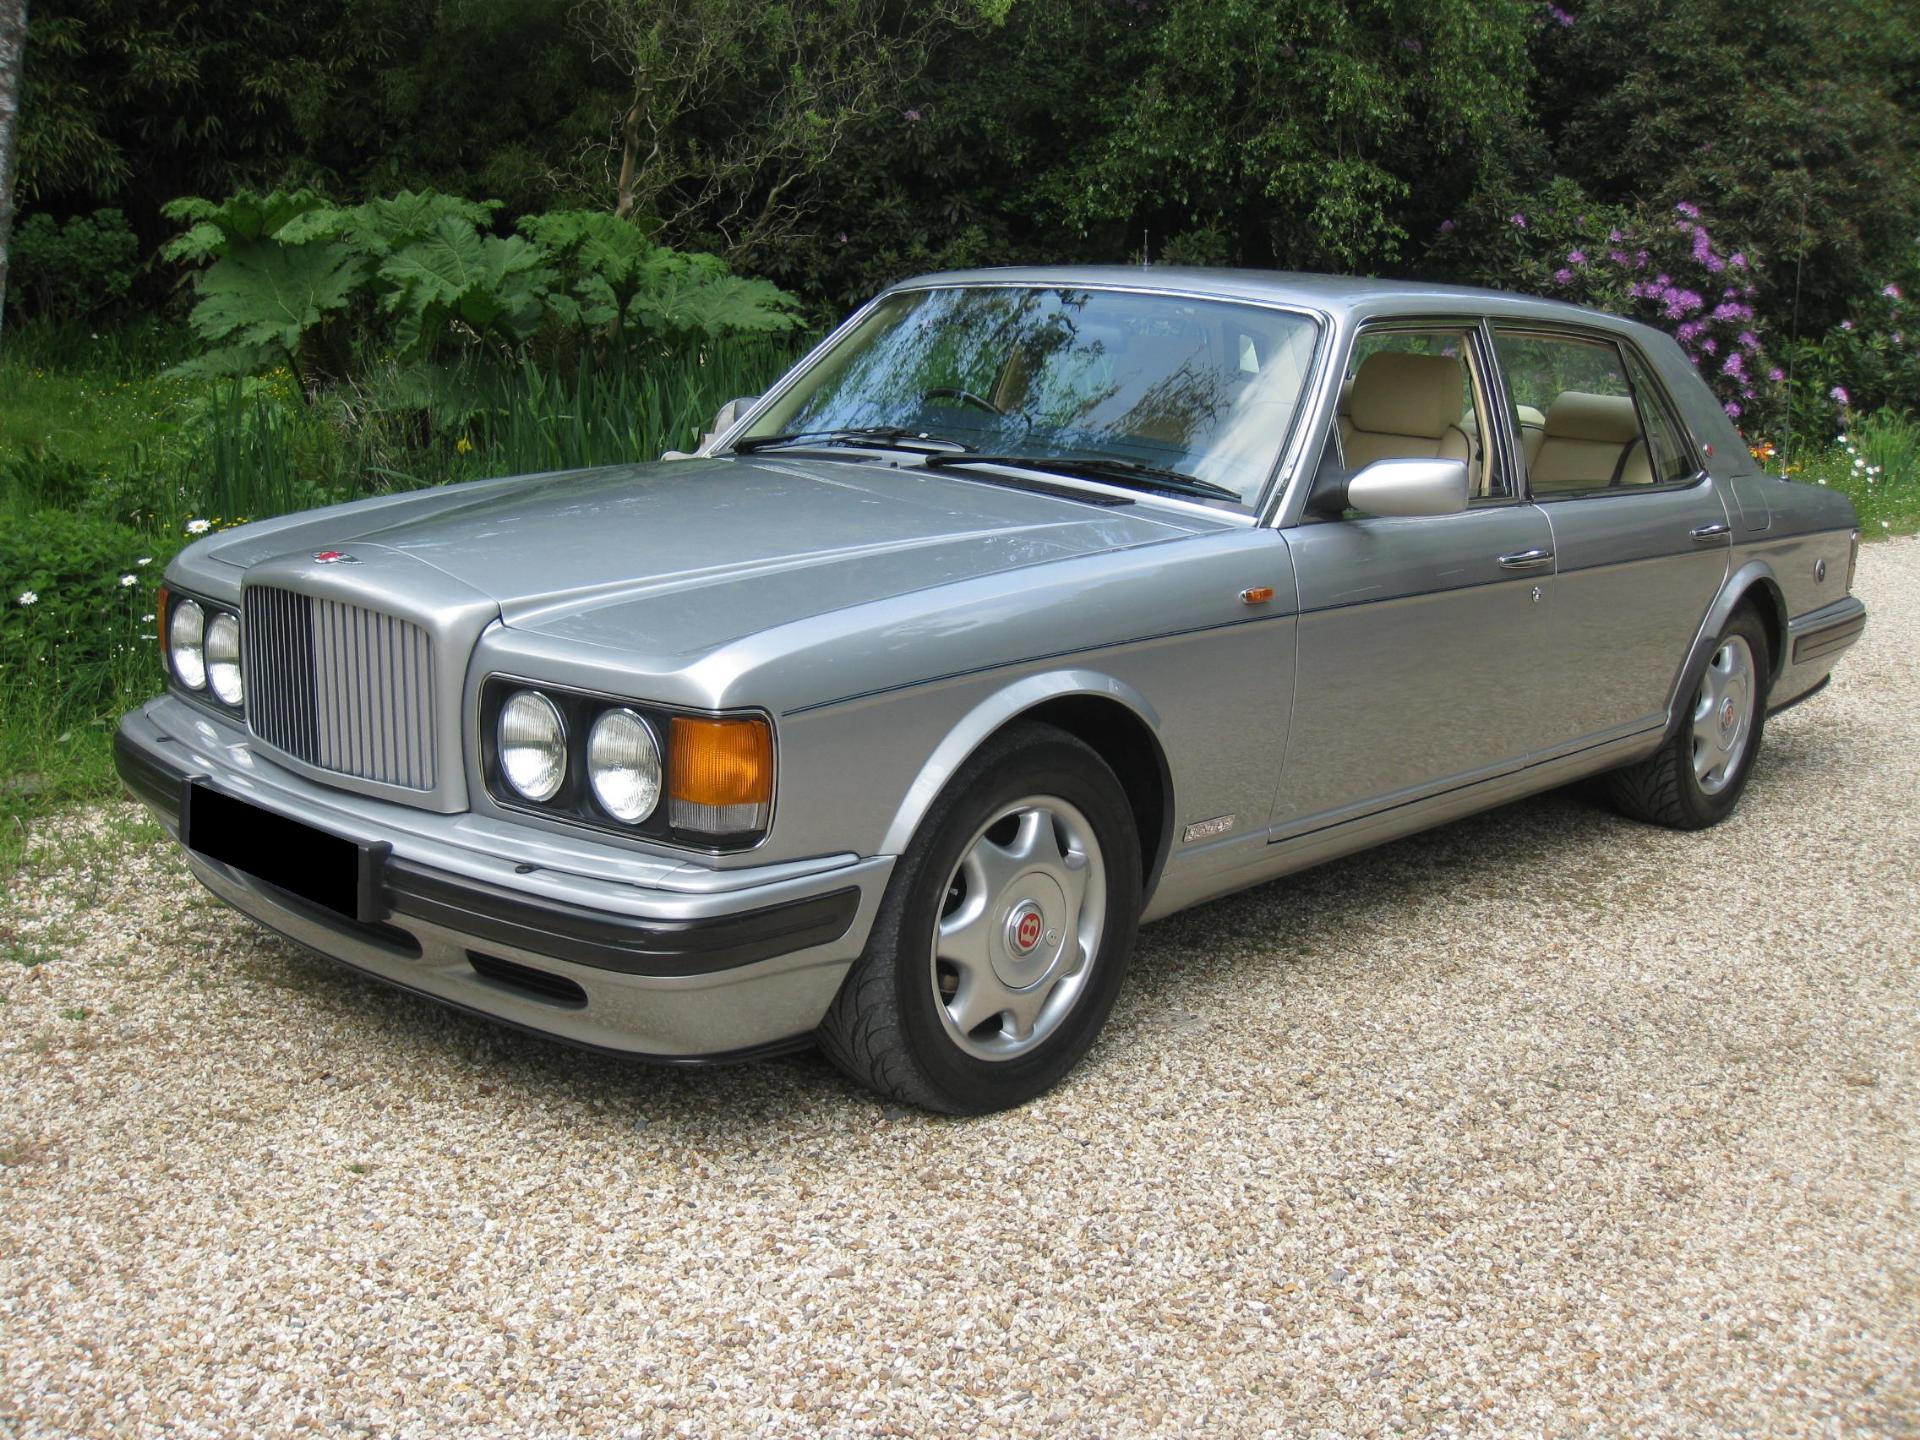 1997 Bentley TURBO RL Automatic For Sale In Landford, Wiltshire